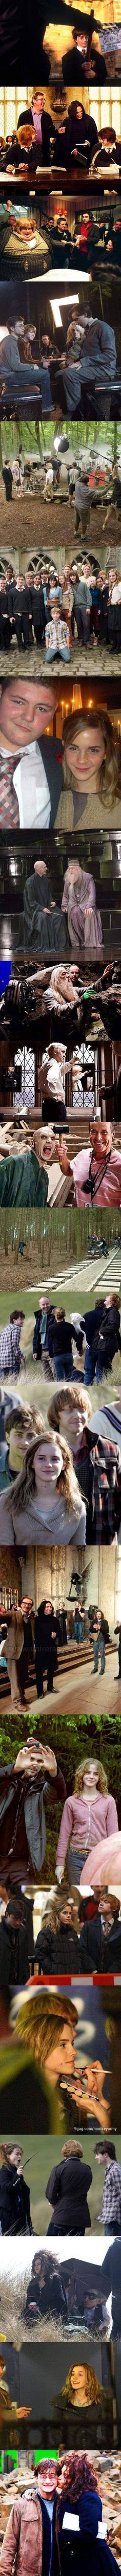 Harry Potter Behind The Scenes....just for the one of voldemort and dumbledore. Oh, and dobby